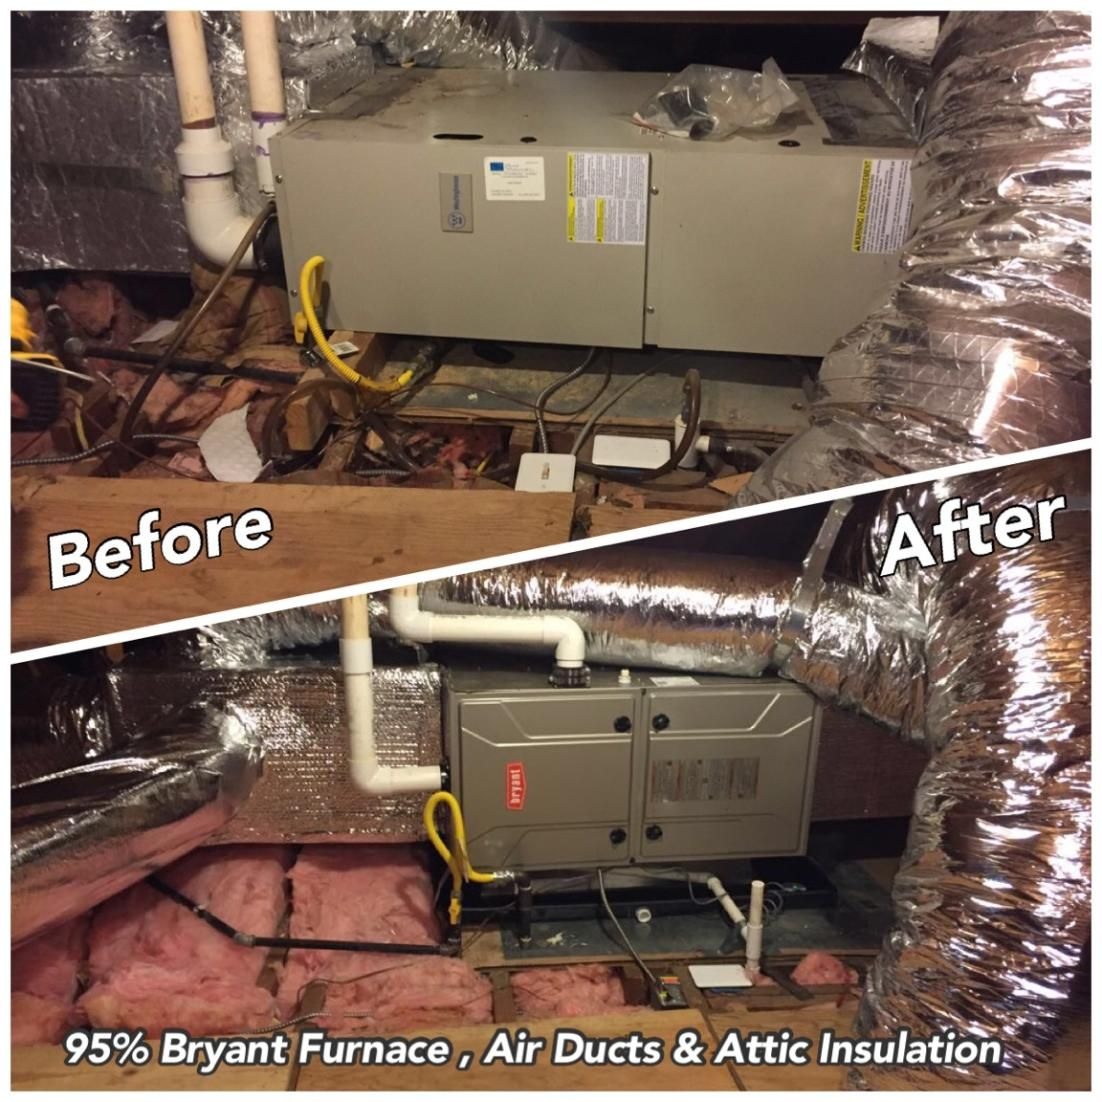 hight resolution of before after photos of a bryant furnace air ducts and attic insulation installation in redwood city ca great job team